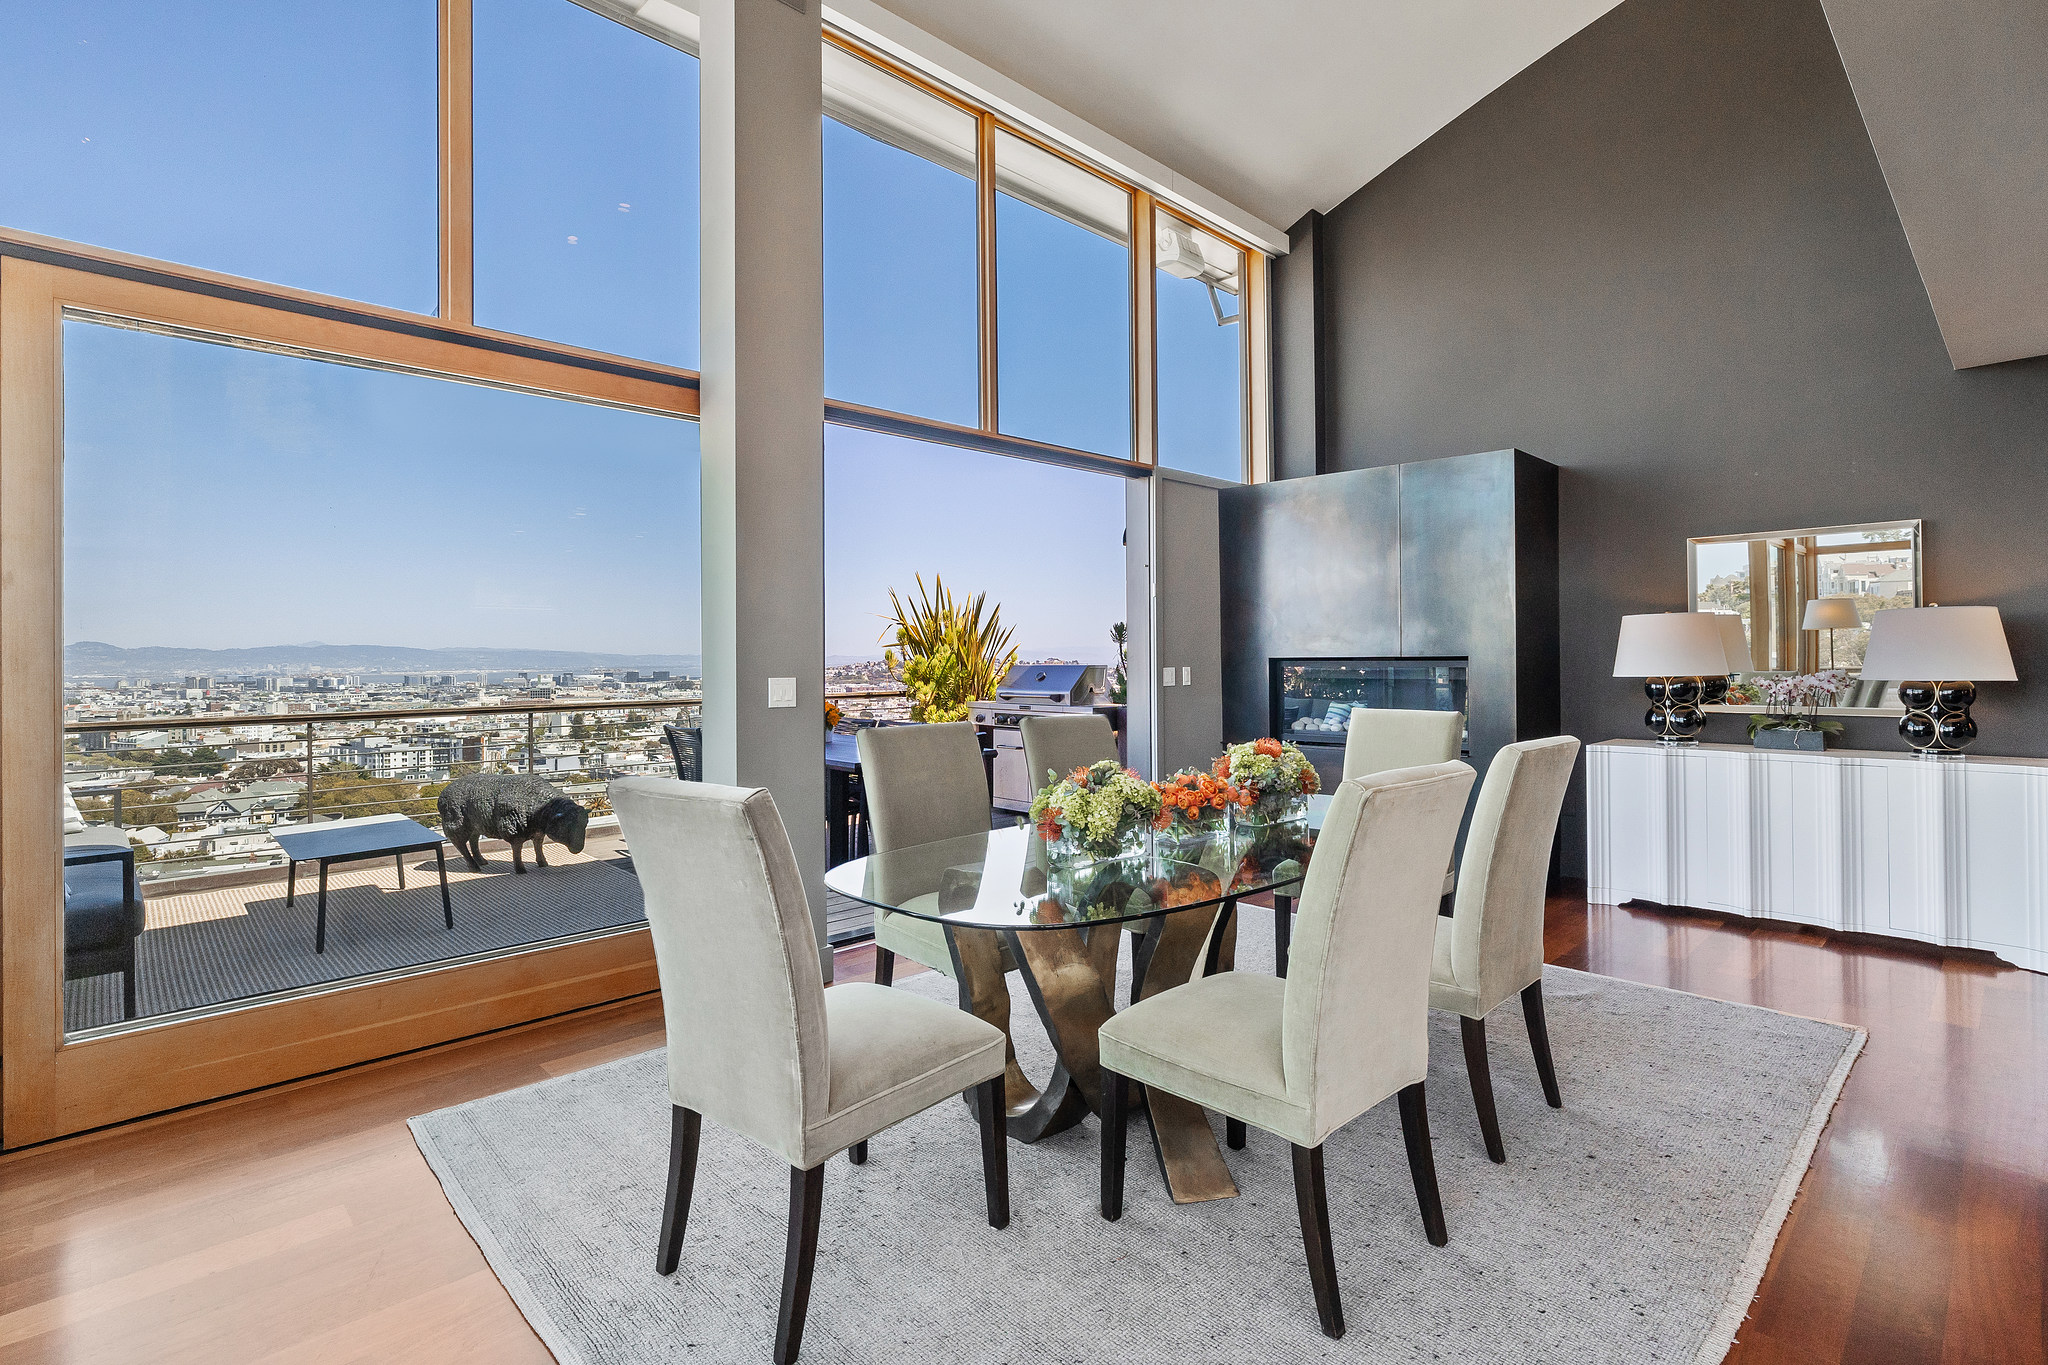 Dining room table set overlooking city through large windows